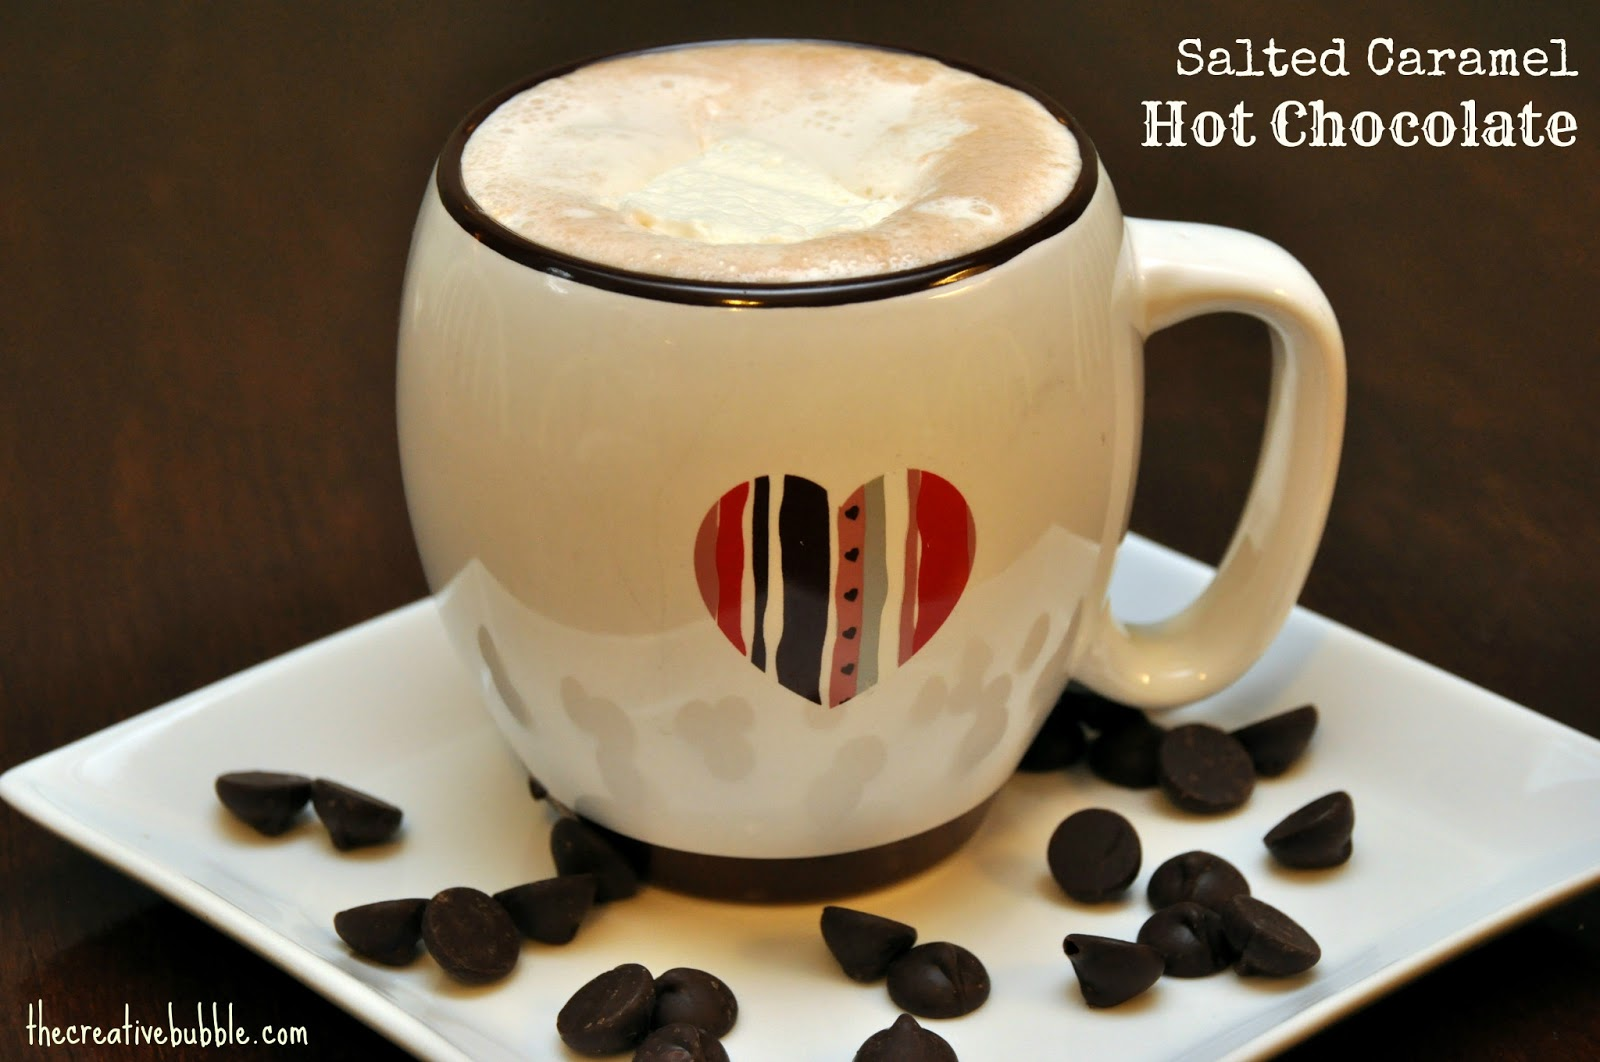 The Creative Bubble: Salted Caramel Hot Chocolate Mix